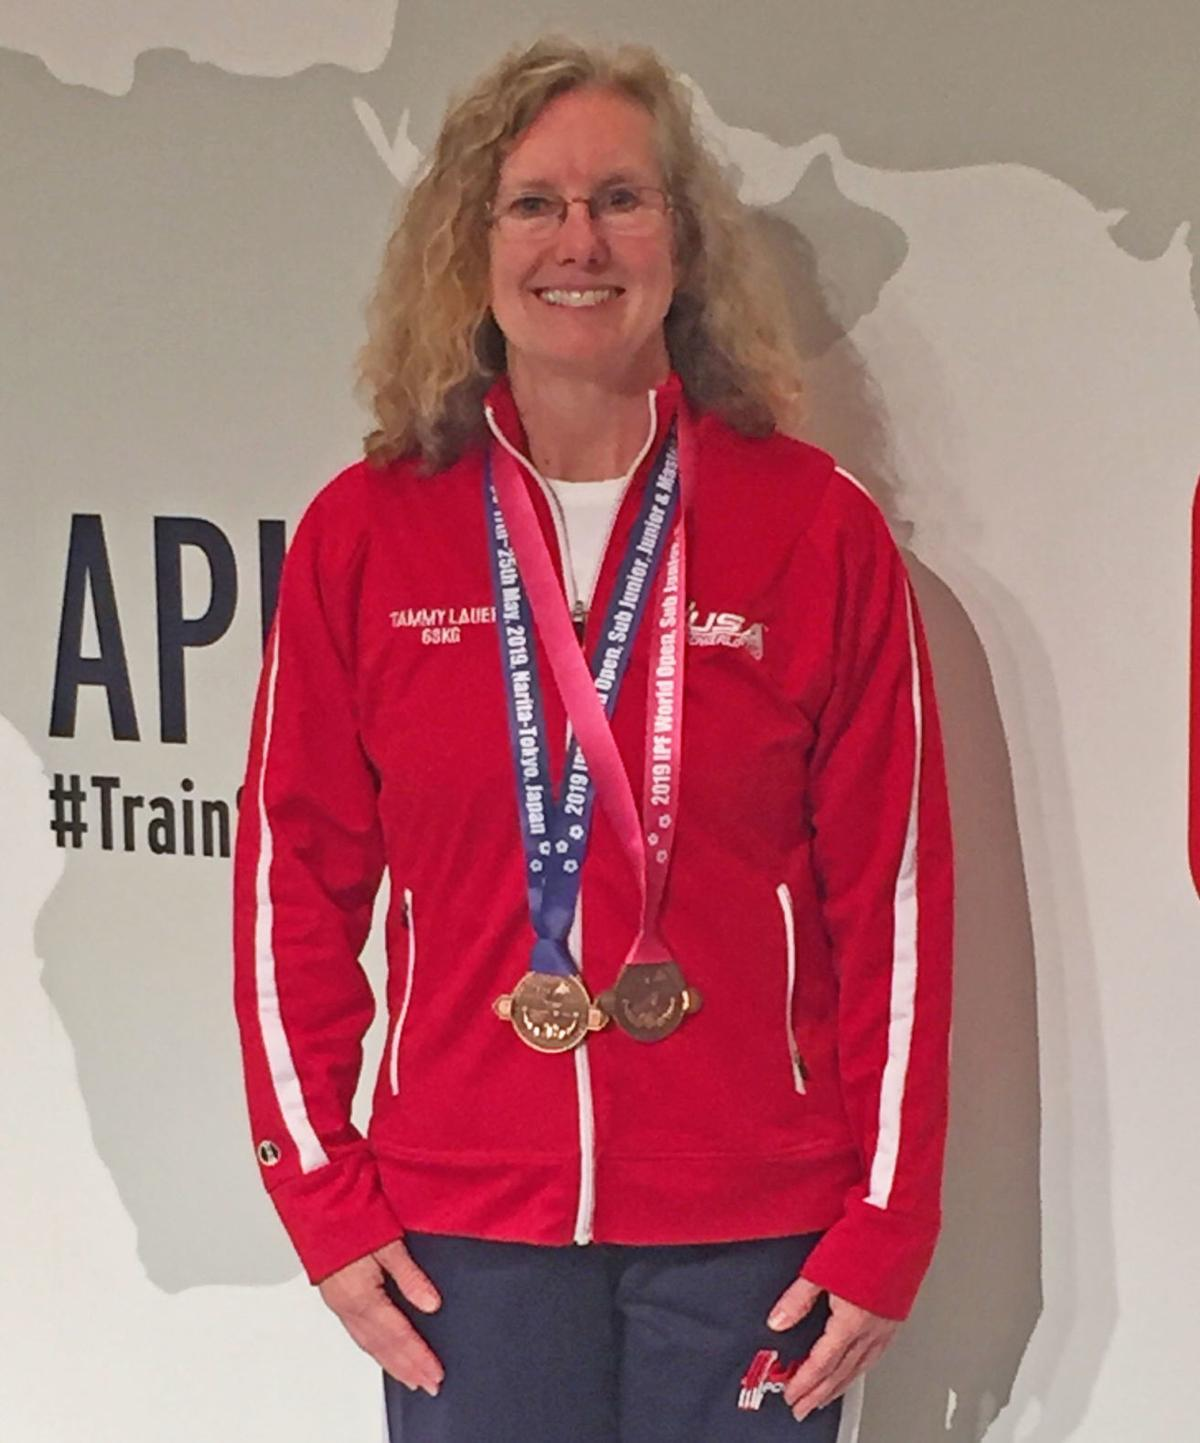 Tammy Lauer with her medals